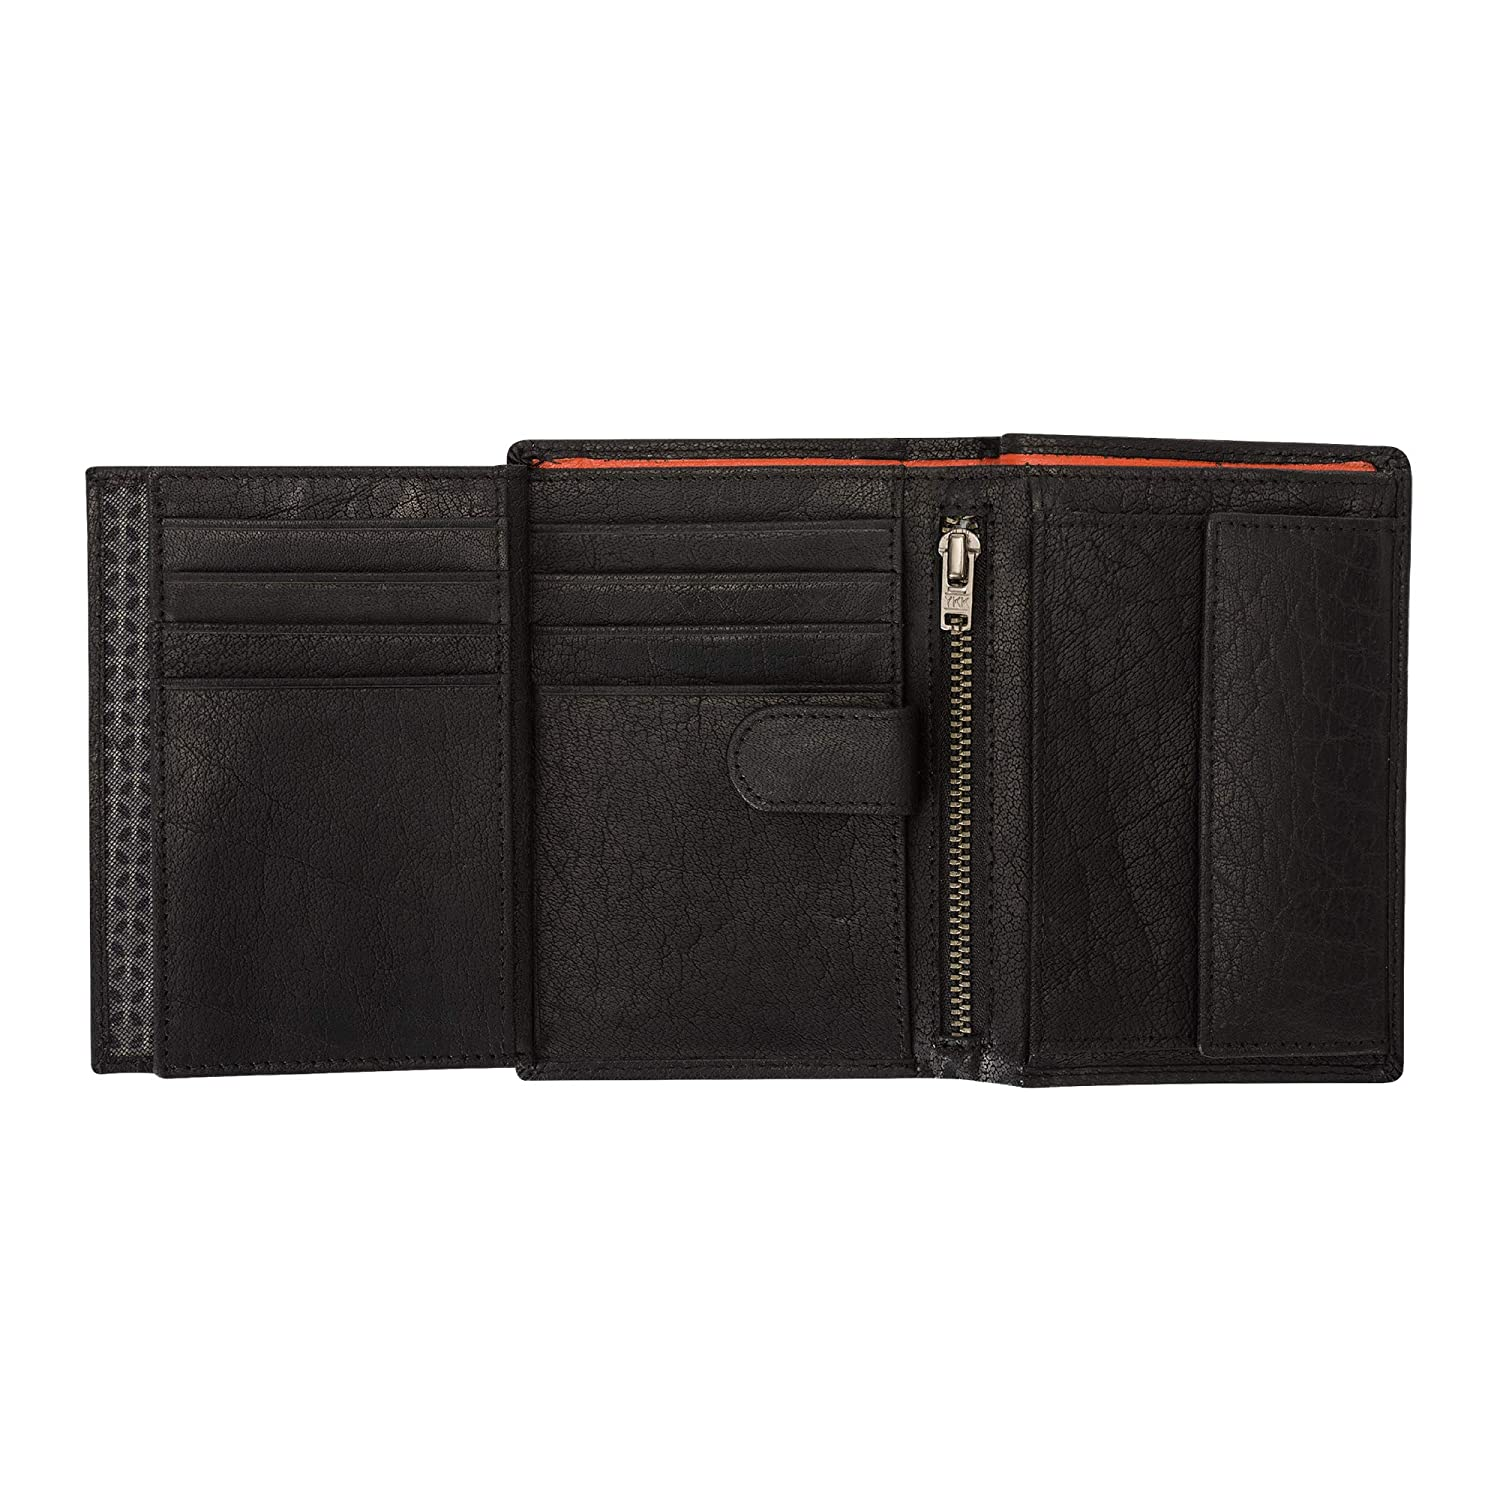 Nuvola Pelle Mens Bifold Vertical Wallet with Coin Pocket in Buffalo Leather 12 Card Slots and Inner Zip Holder Black